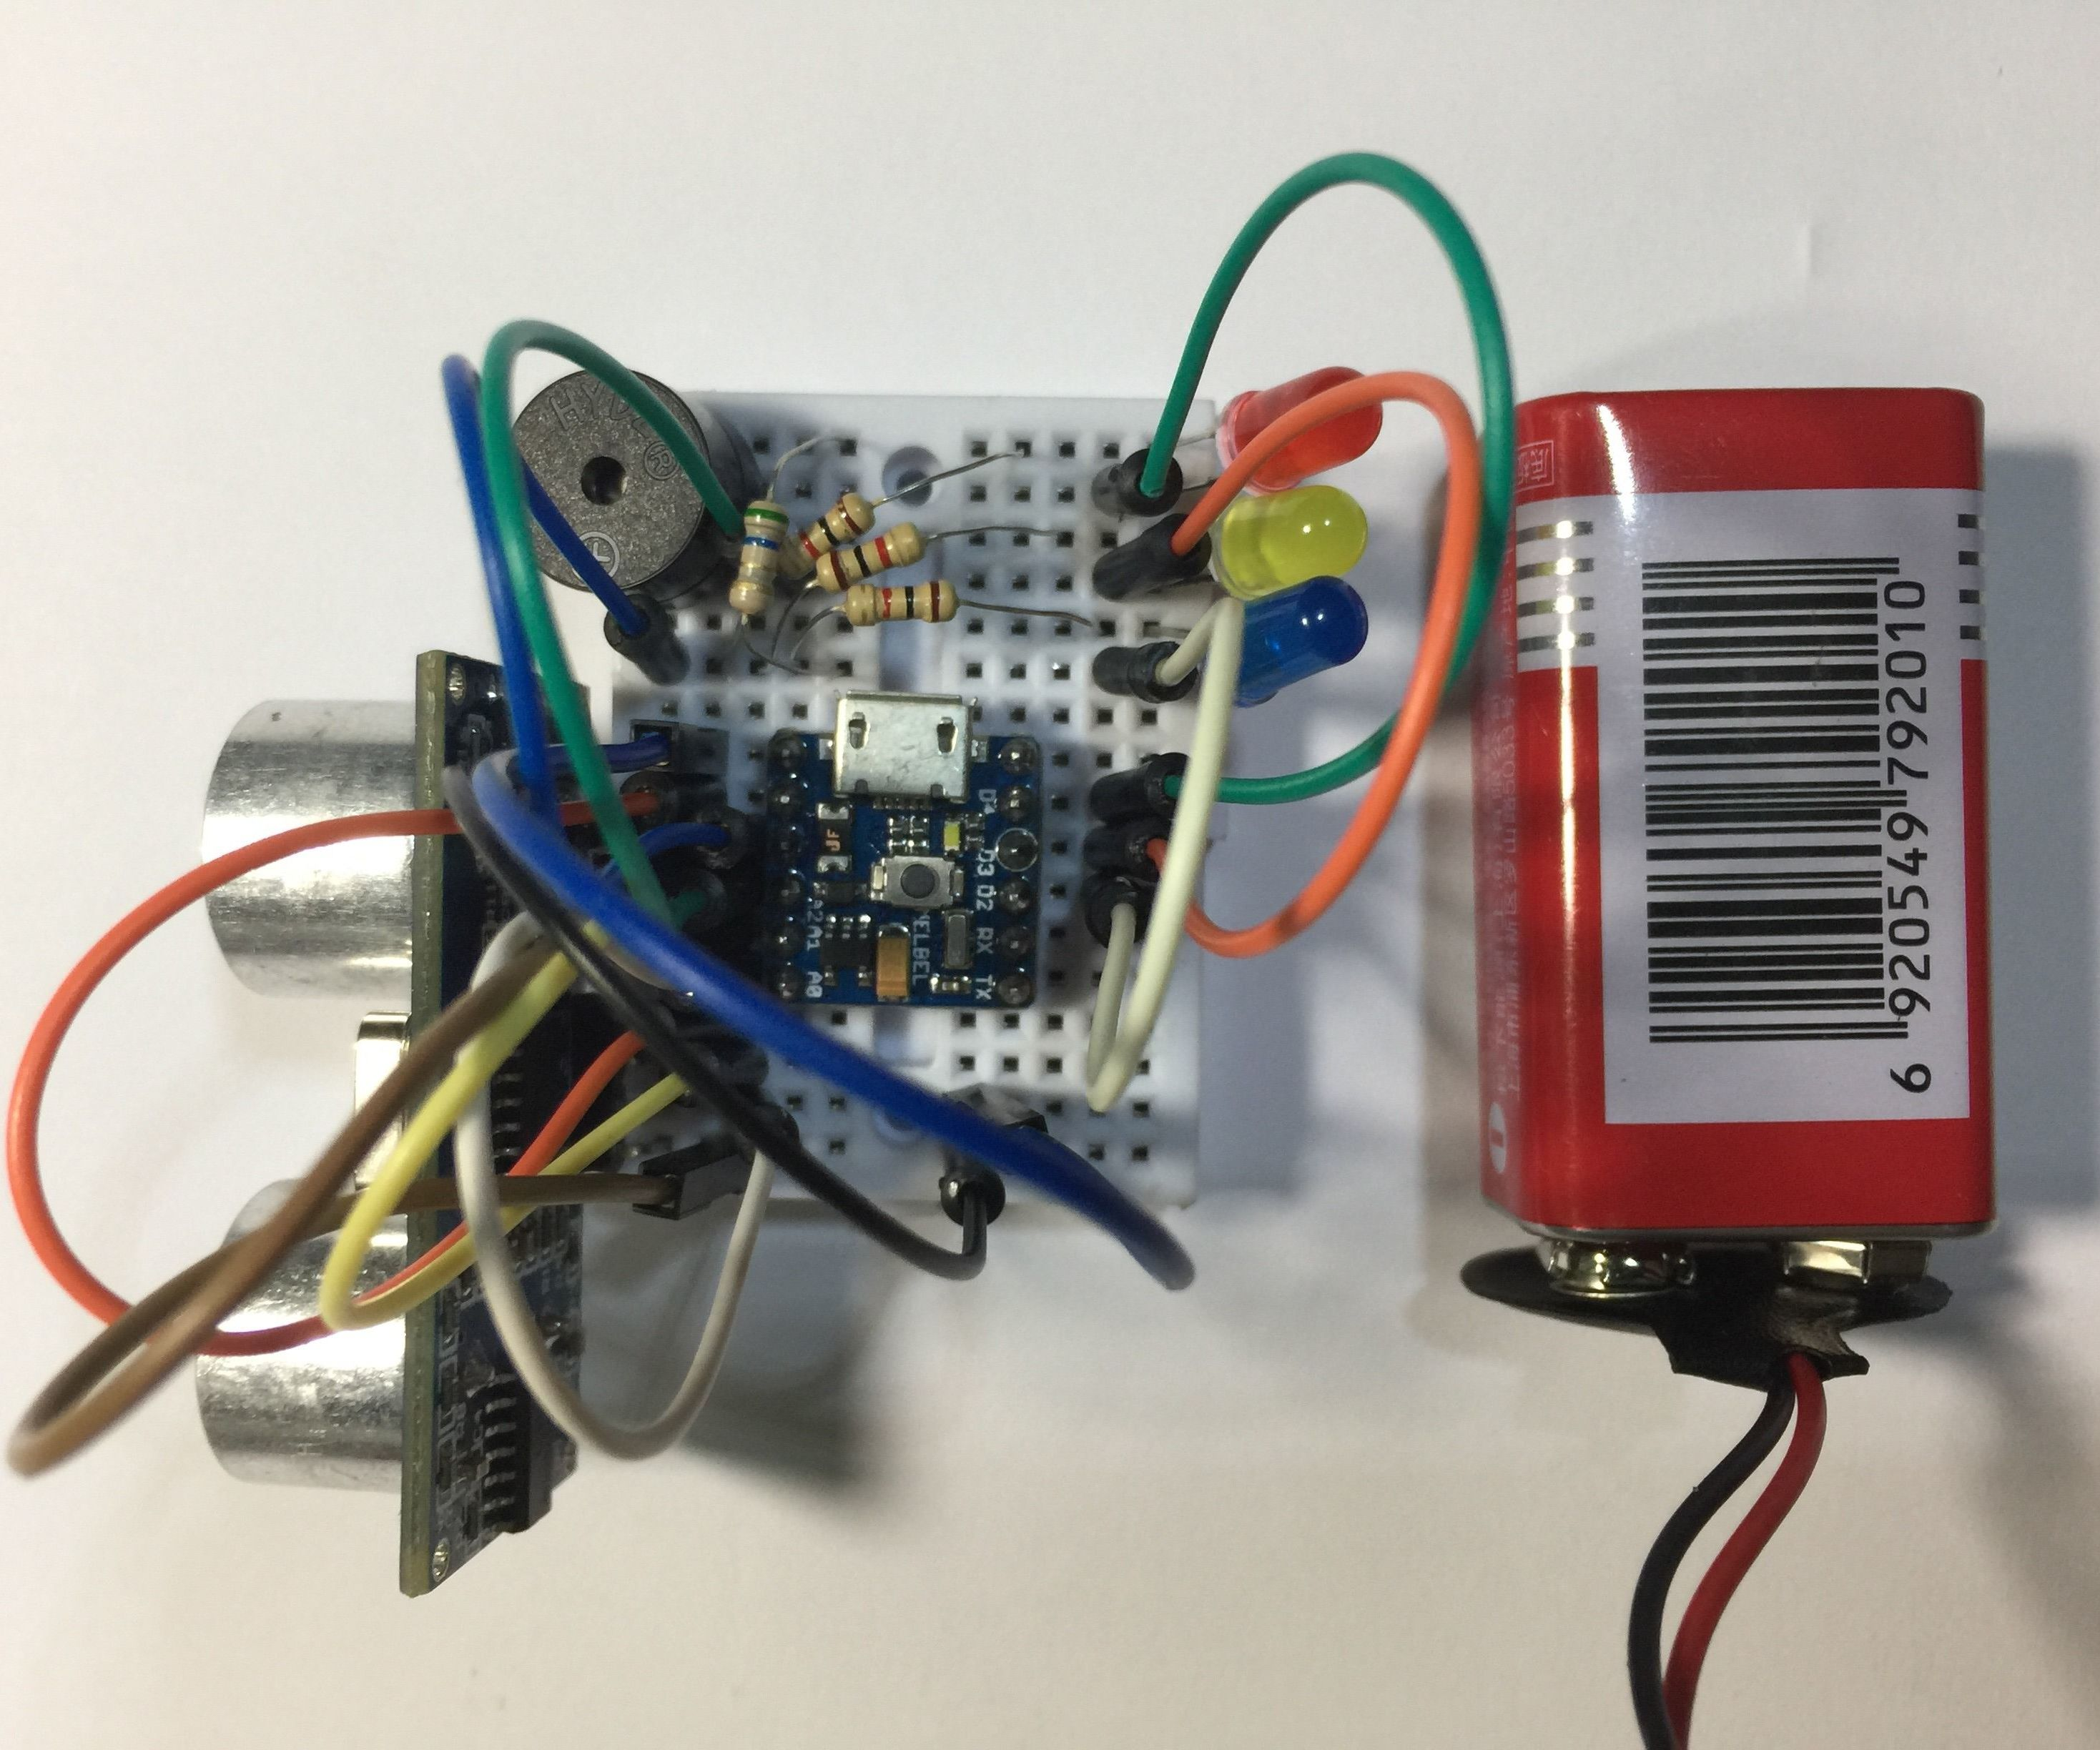 A Tiny Alarm System Using a Super Tiny Arduino Compatible Board!